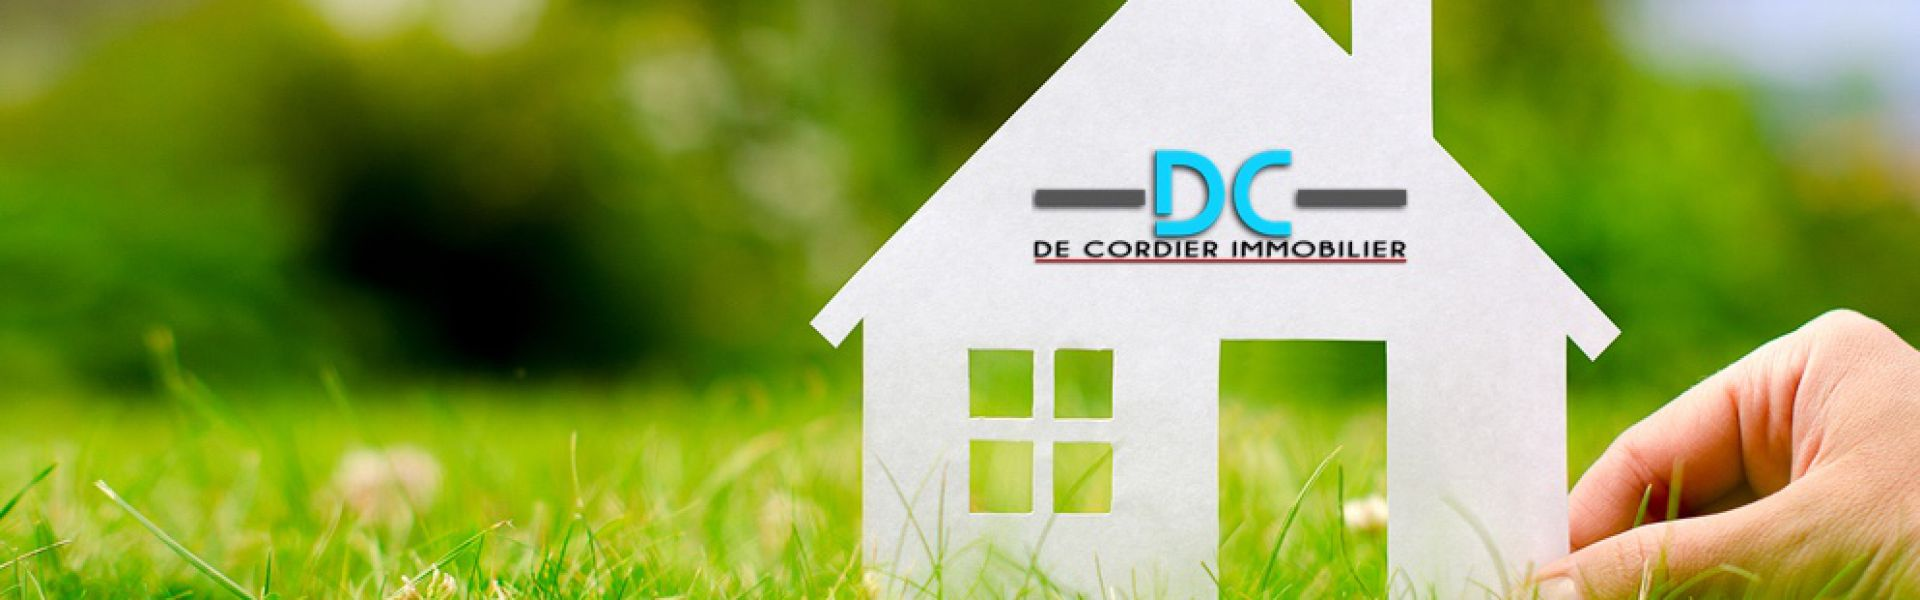 Choose your building plot DE CORDIER IMMOBILIER Evian